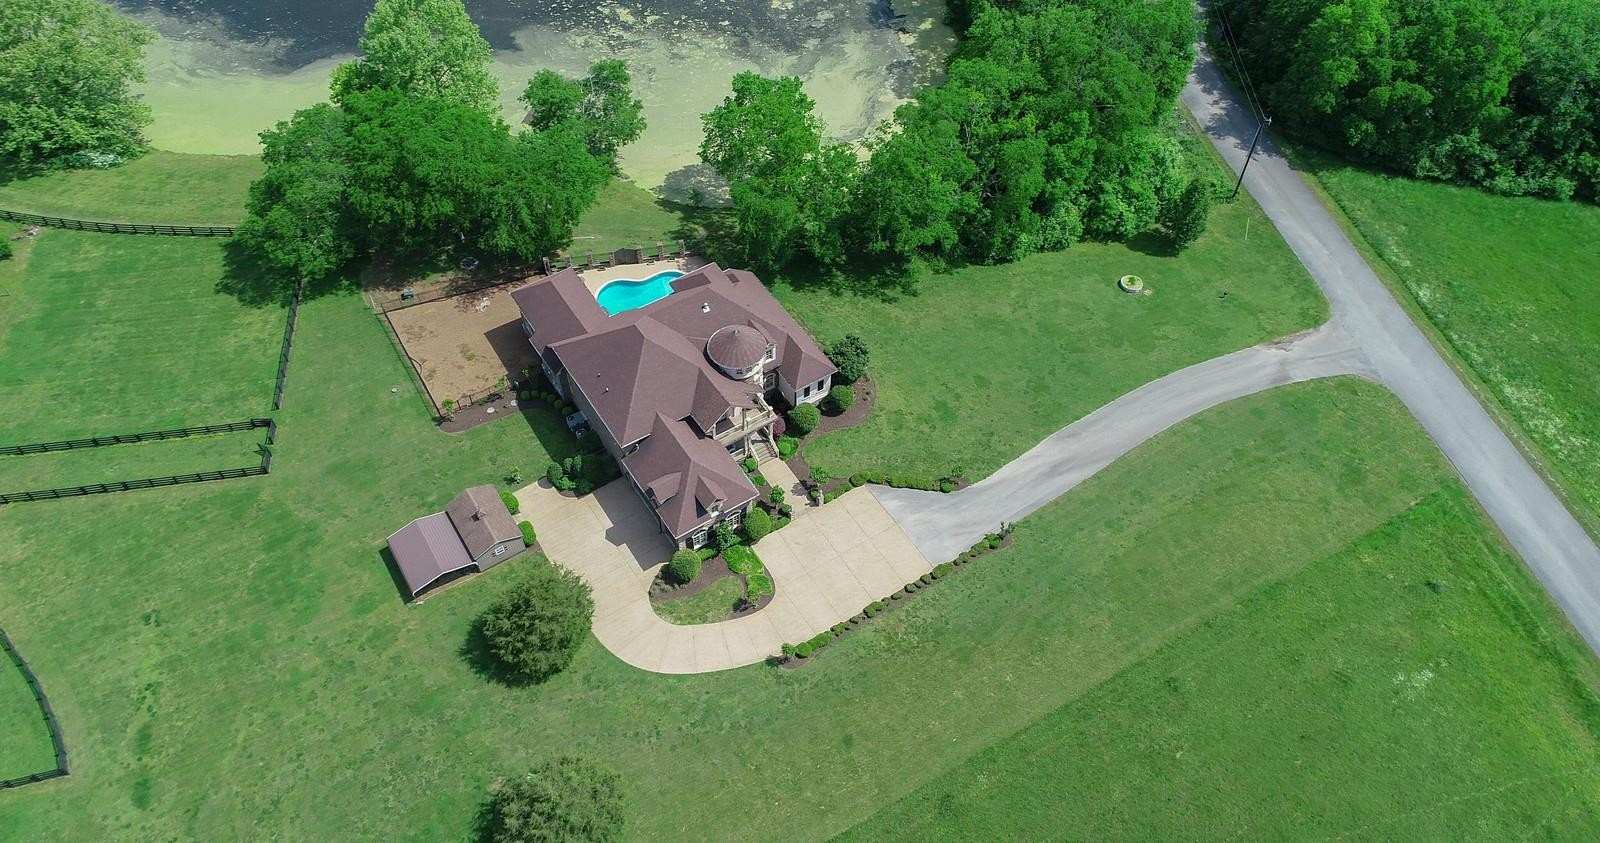 Magnificent estate home on 98 pristine acres. Panoramic views of the land & it's own private 3 acre pond. This one has everything. Gated entry, land is level & pristine. Surrounded by the Harpeth River which adds to the privacy. The home has everything you could ask. Gourmet kitch w/wolf appl. & butler pantry. Down Master w/huge walk in closet & dream master bath. Property has 2 additional homes that could be rentals or guest houses. Several Barns & plenty of room for horses.